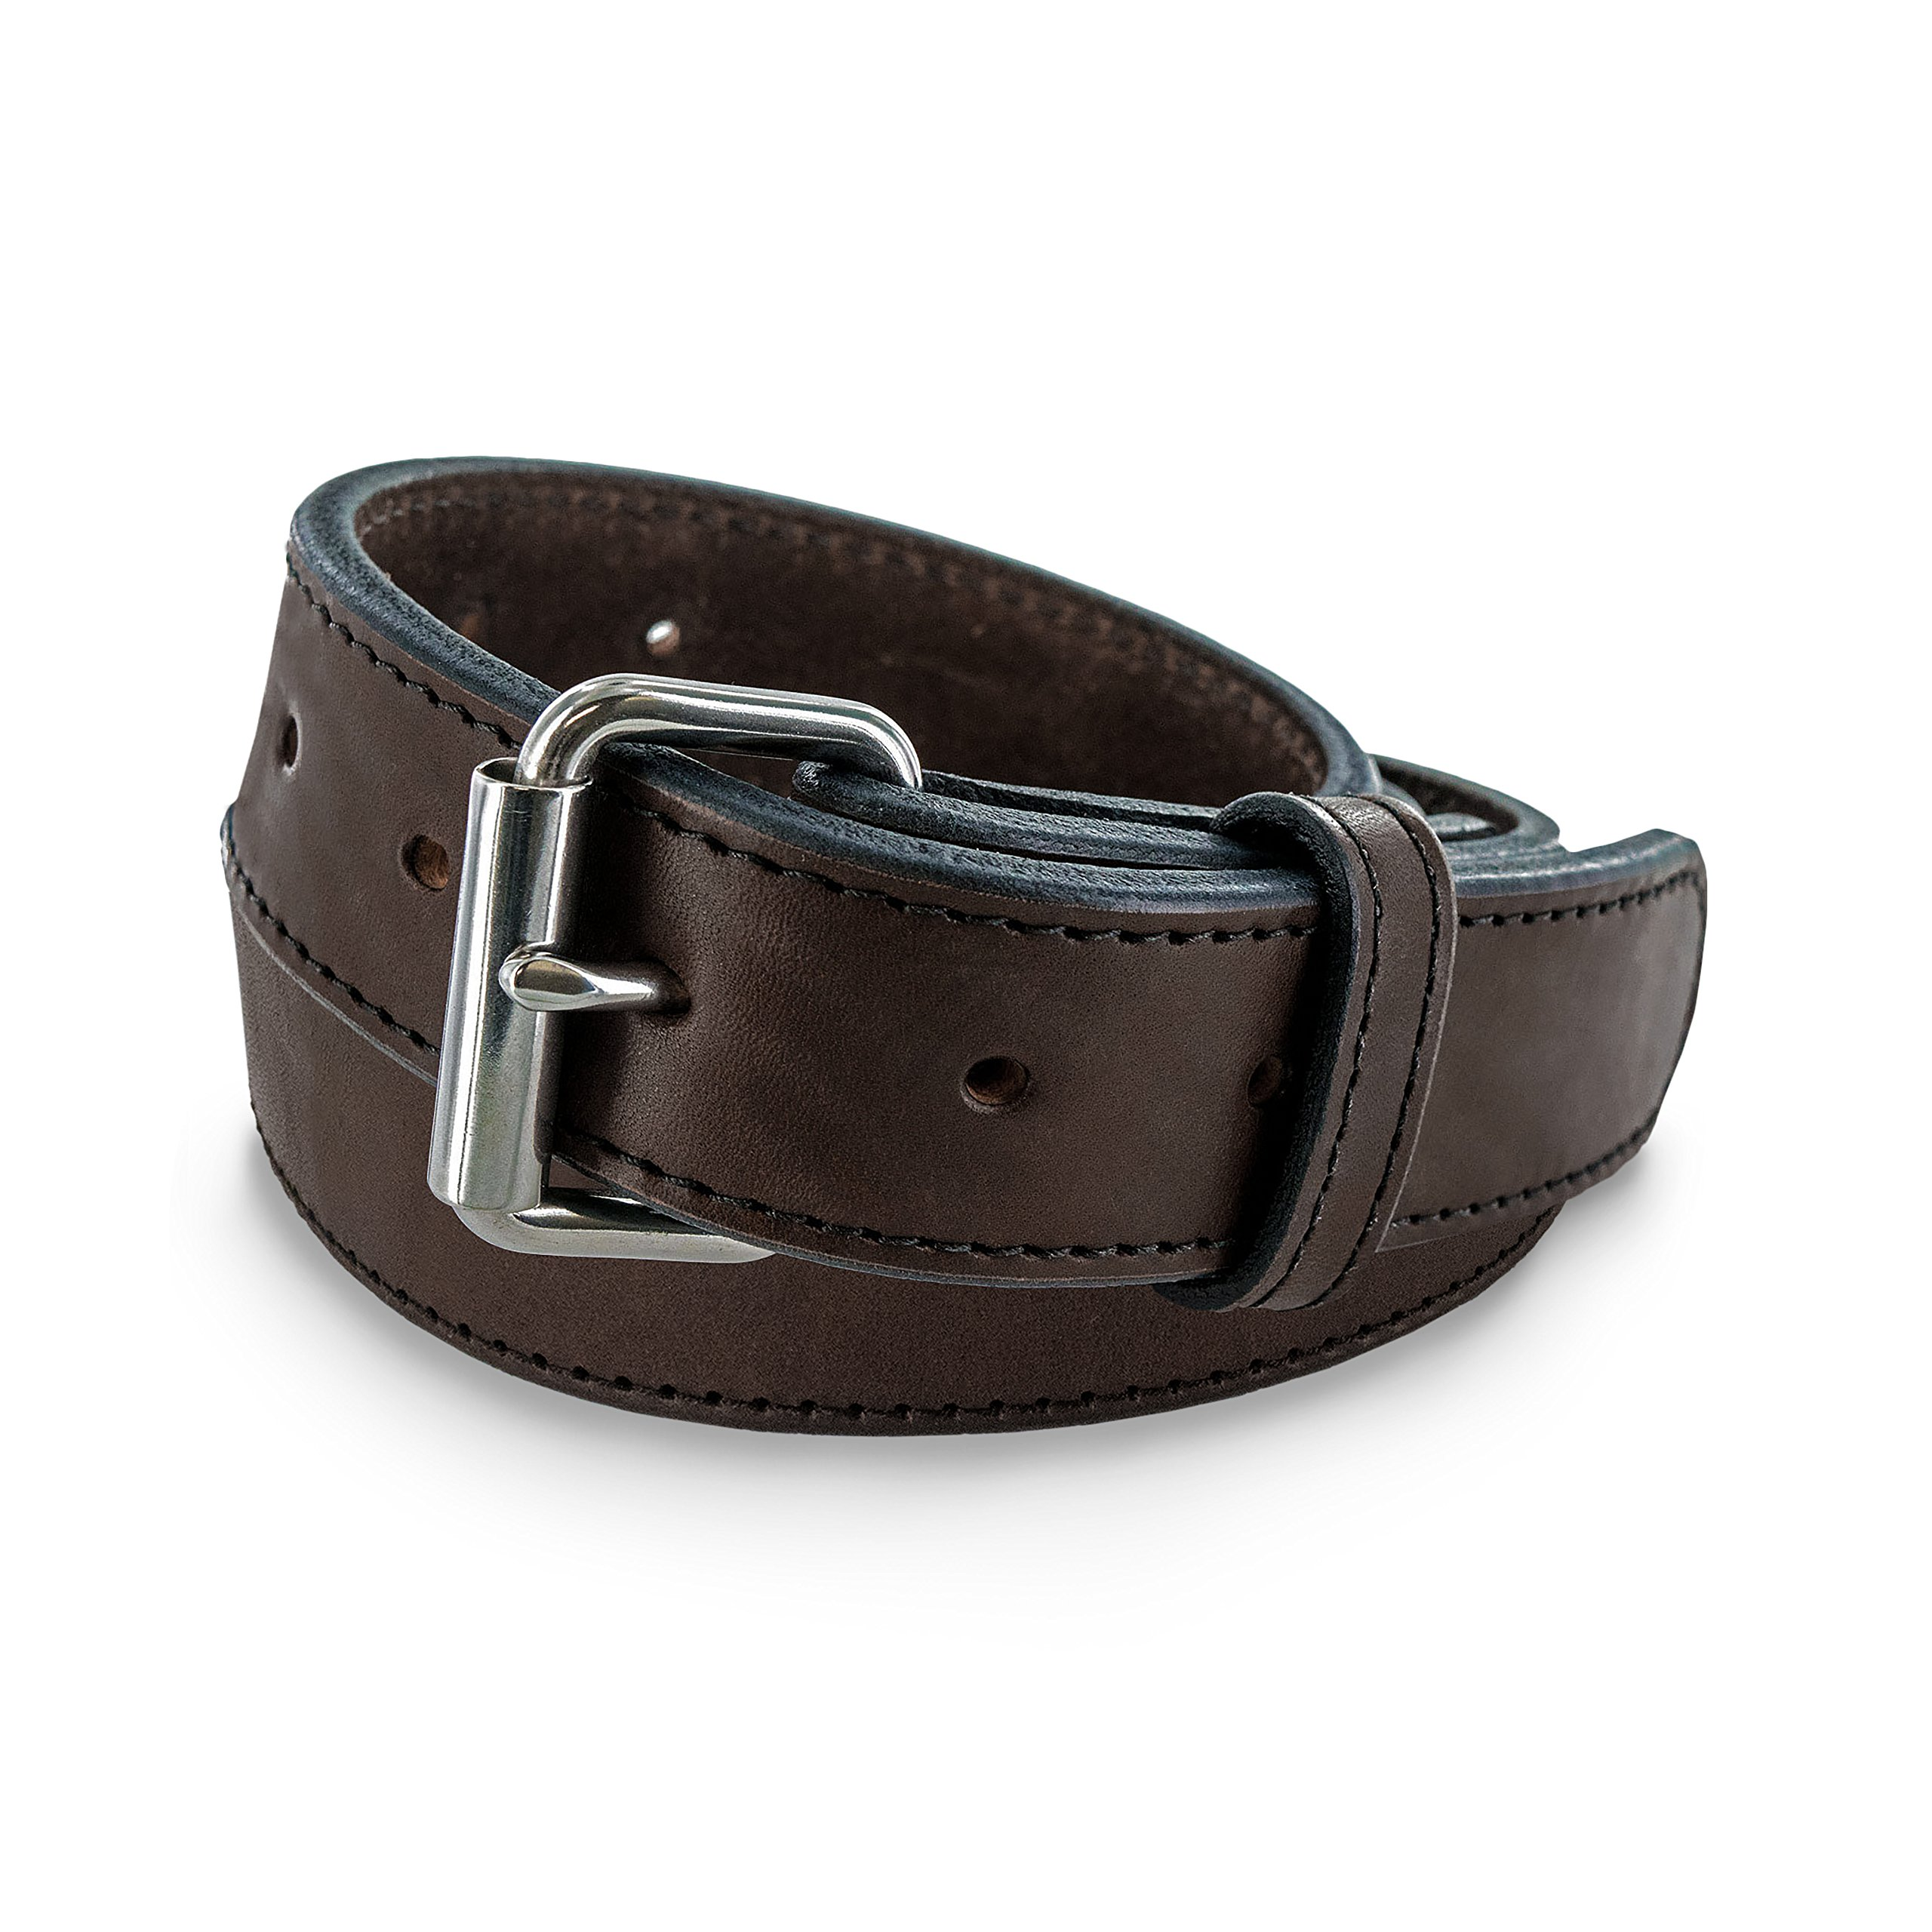 f1a6005b9e5 Hanks Extreme - Leather Gun Belt for CCW - Concealed Carry - 17oz. Premium  Leather